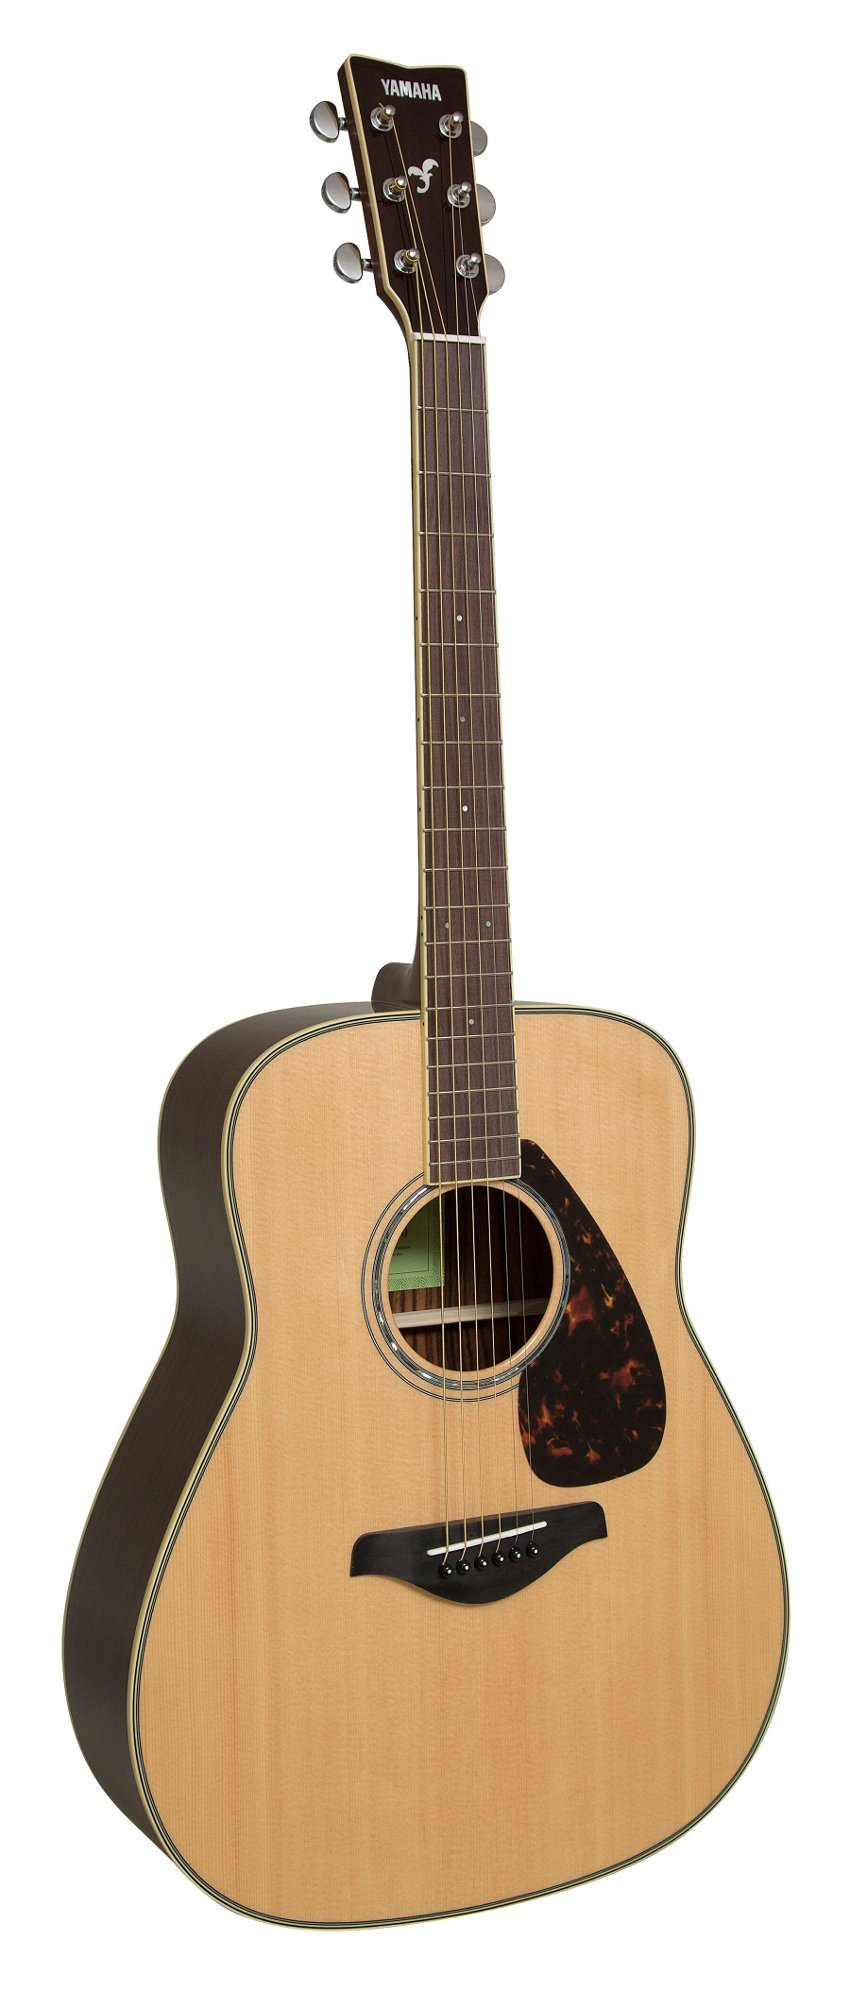 Acoustic Guitar with Solid Sitka Spruce Top, Rosewood Back and Sides